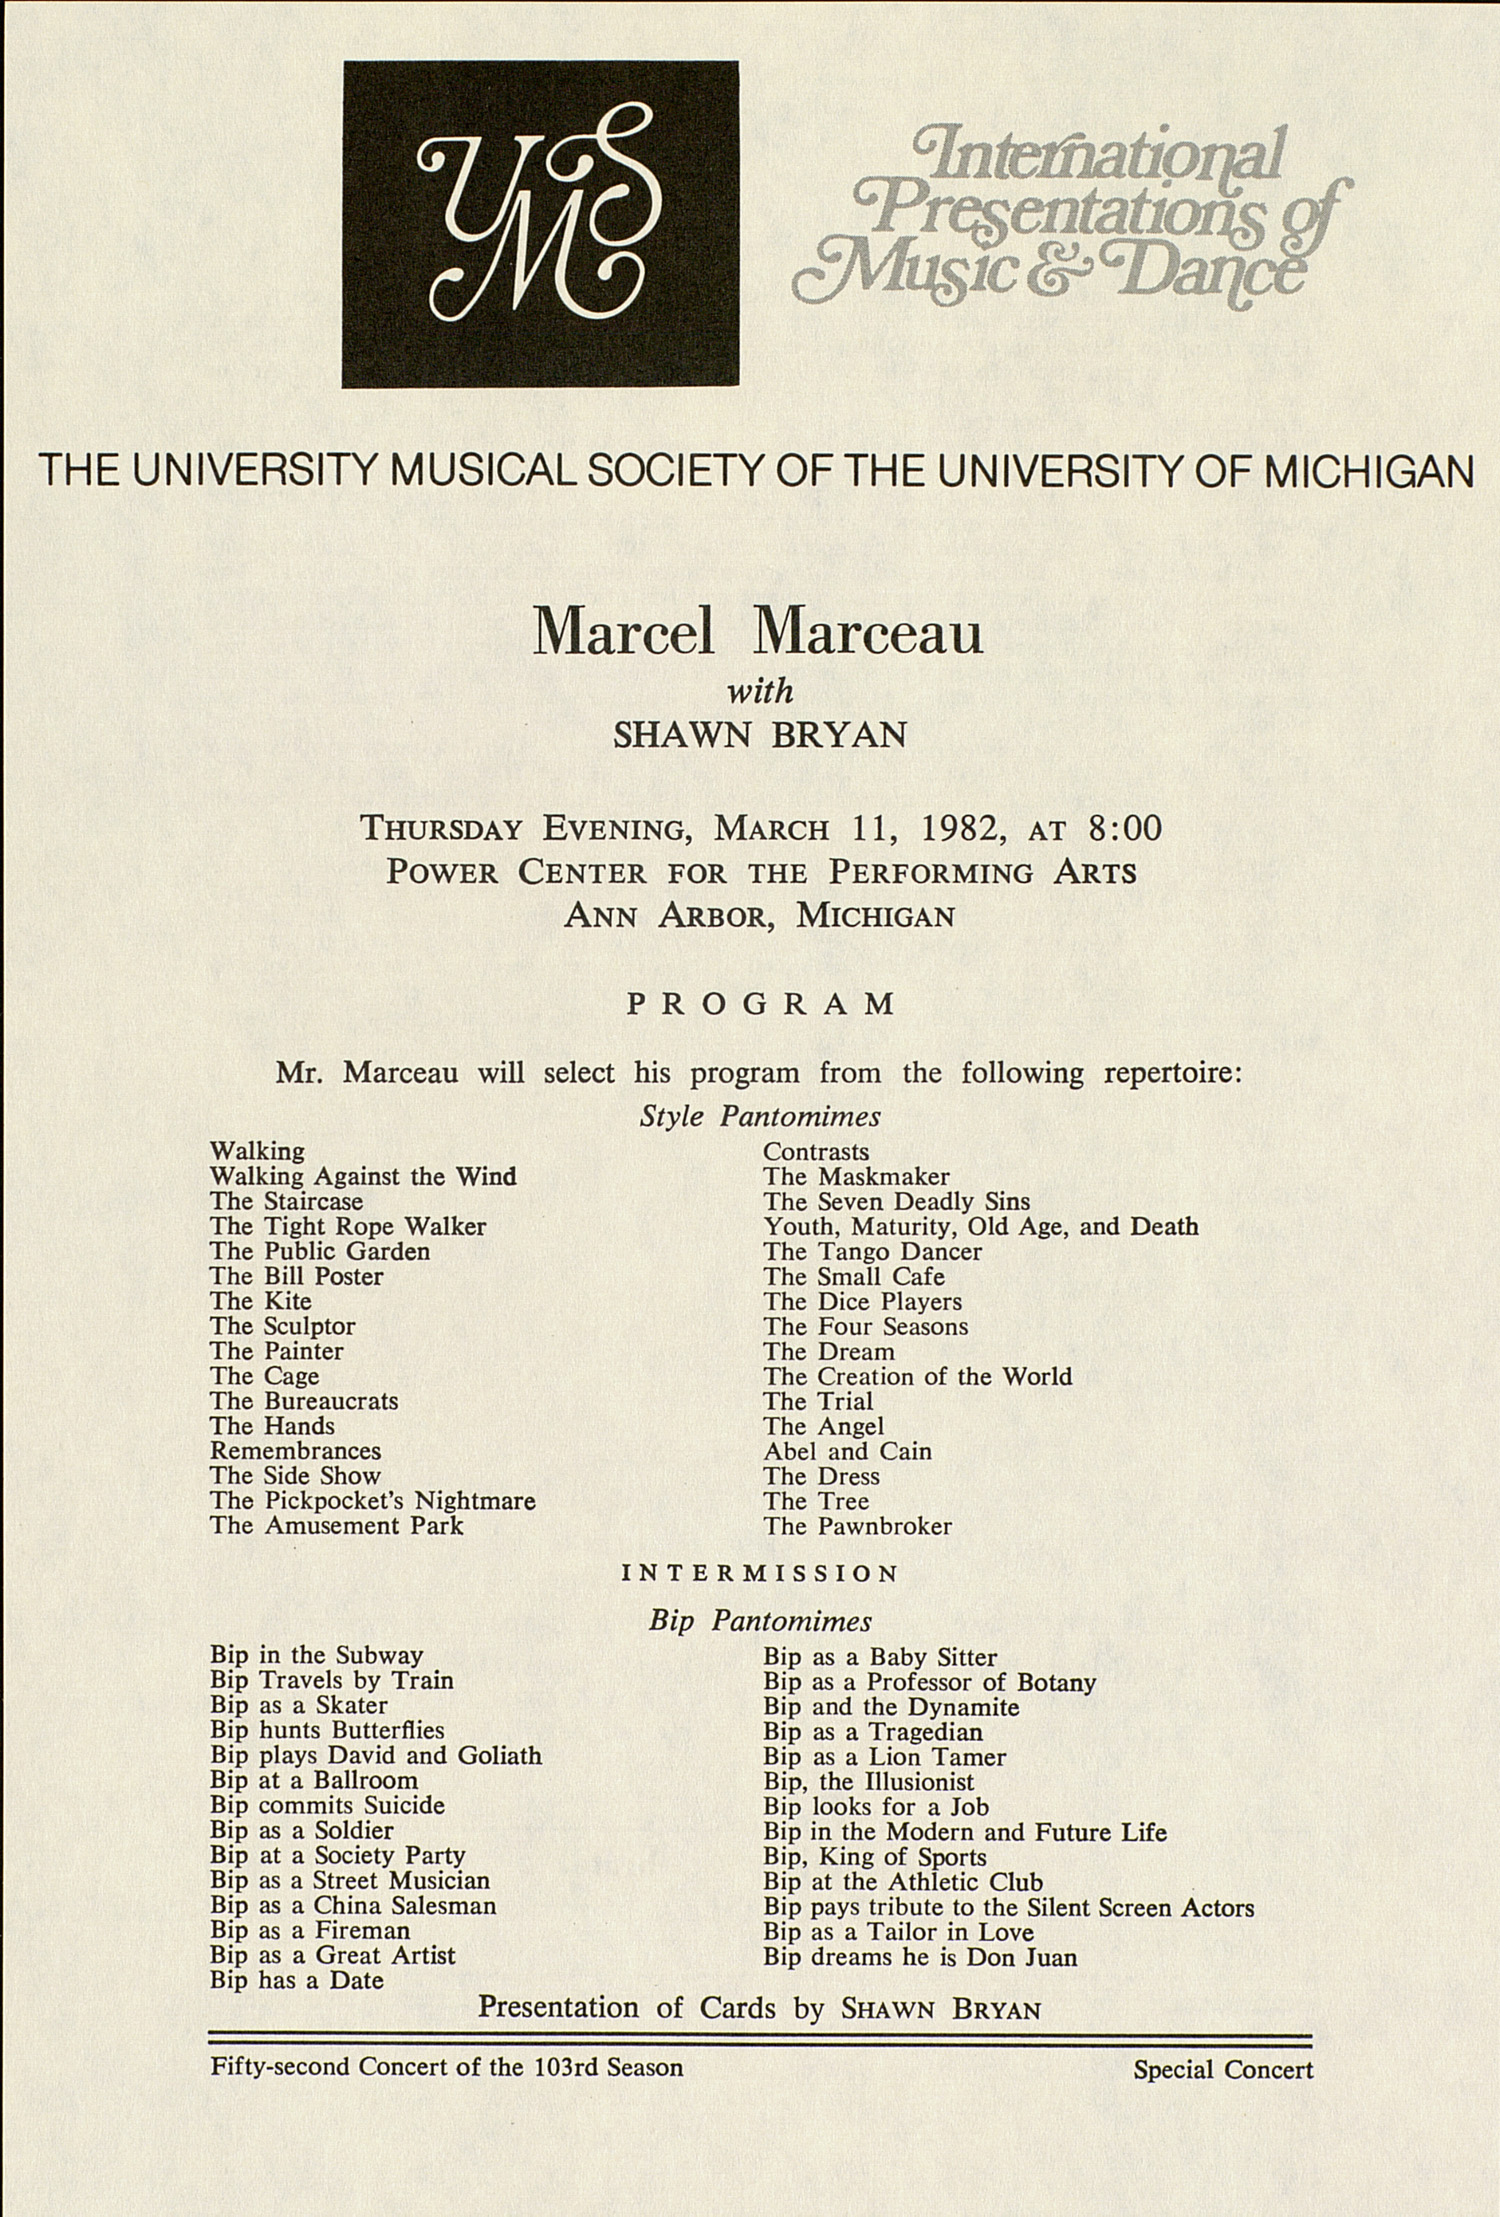 UMS Concert Program, March 11, 1982: International Presentations Of Music & Dance -- Marcel Marceau With Shawn Bryan image